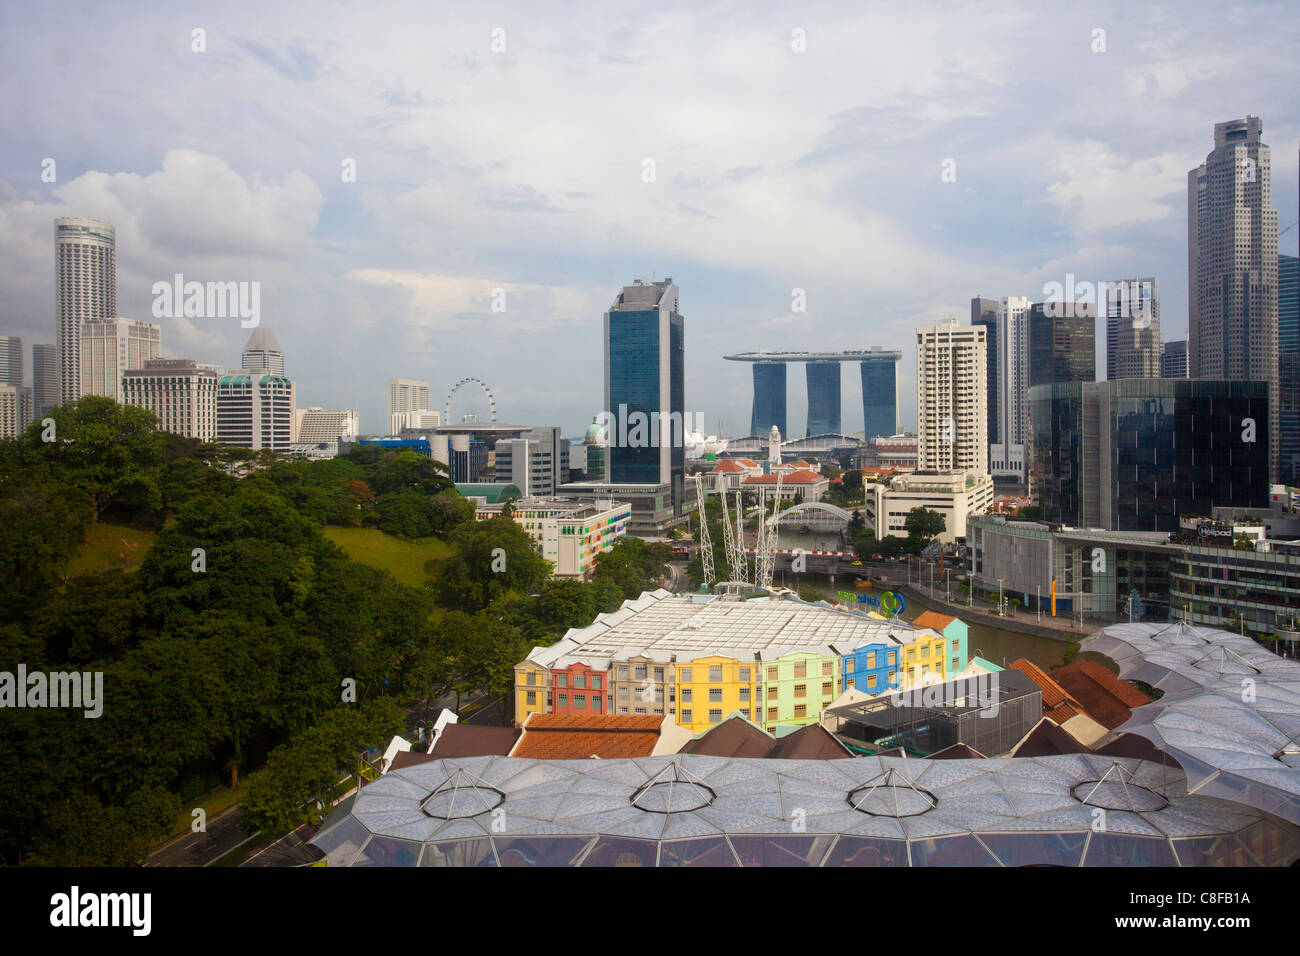 Singapore, Asia, Clarke Quay, bright, Skyline, skyscraper, blocks of flats, high-rise buildings, Downtown - Stock Image